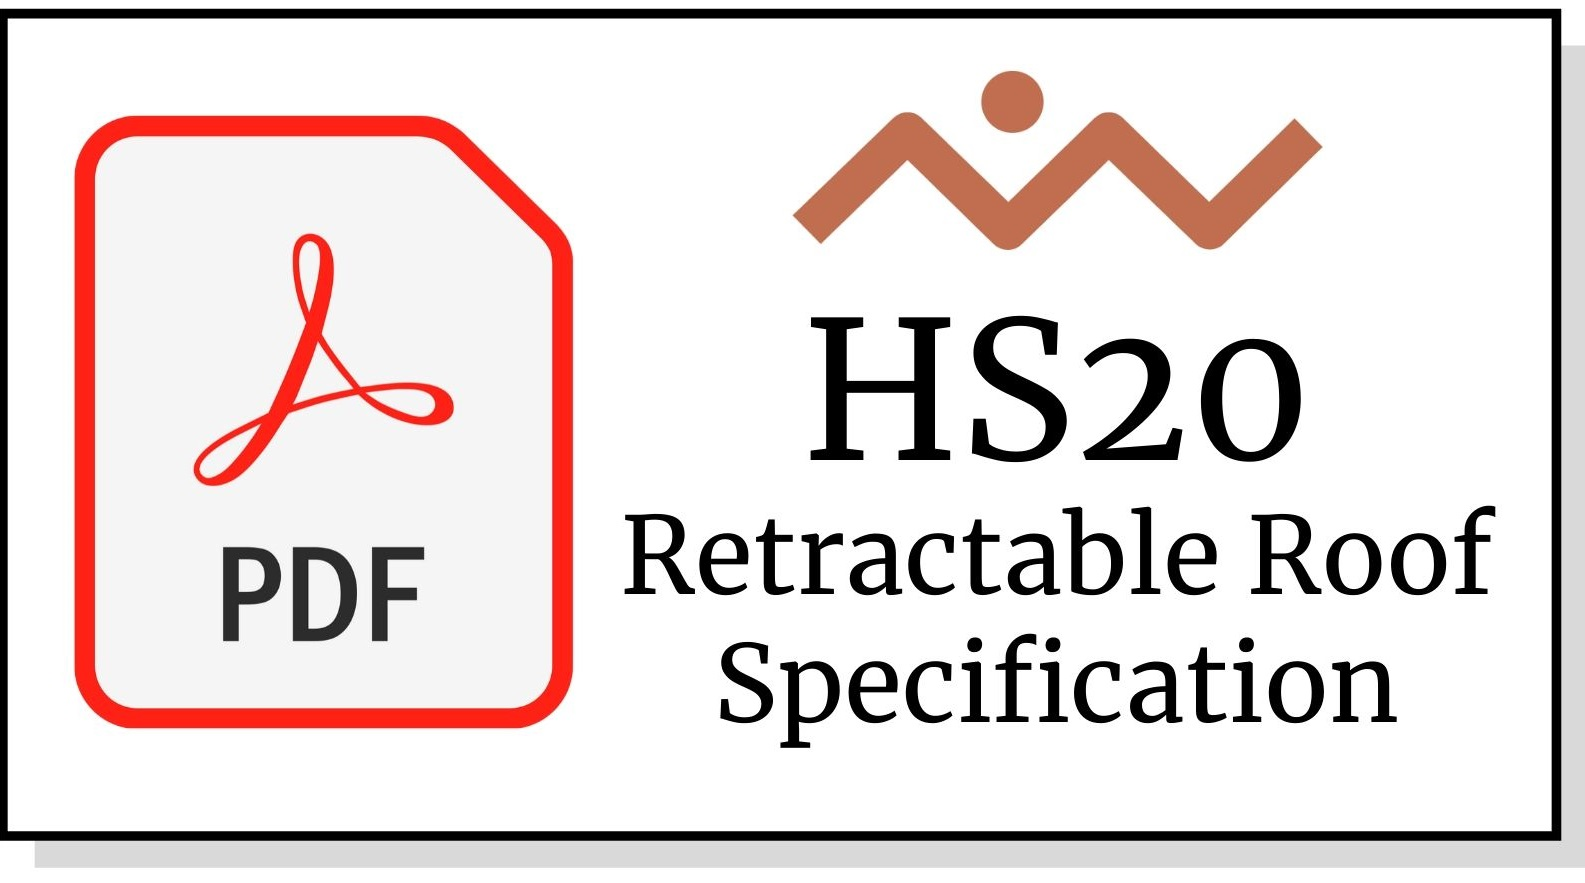 HS20 Retractable Roof Awning